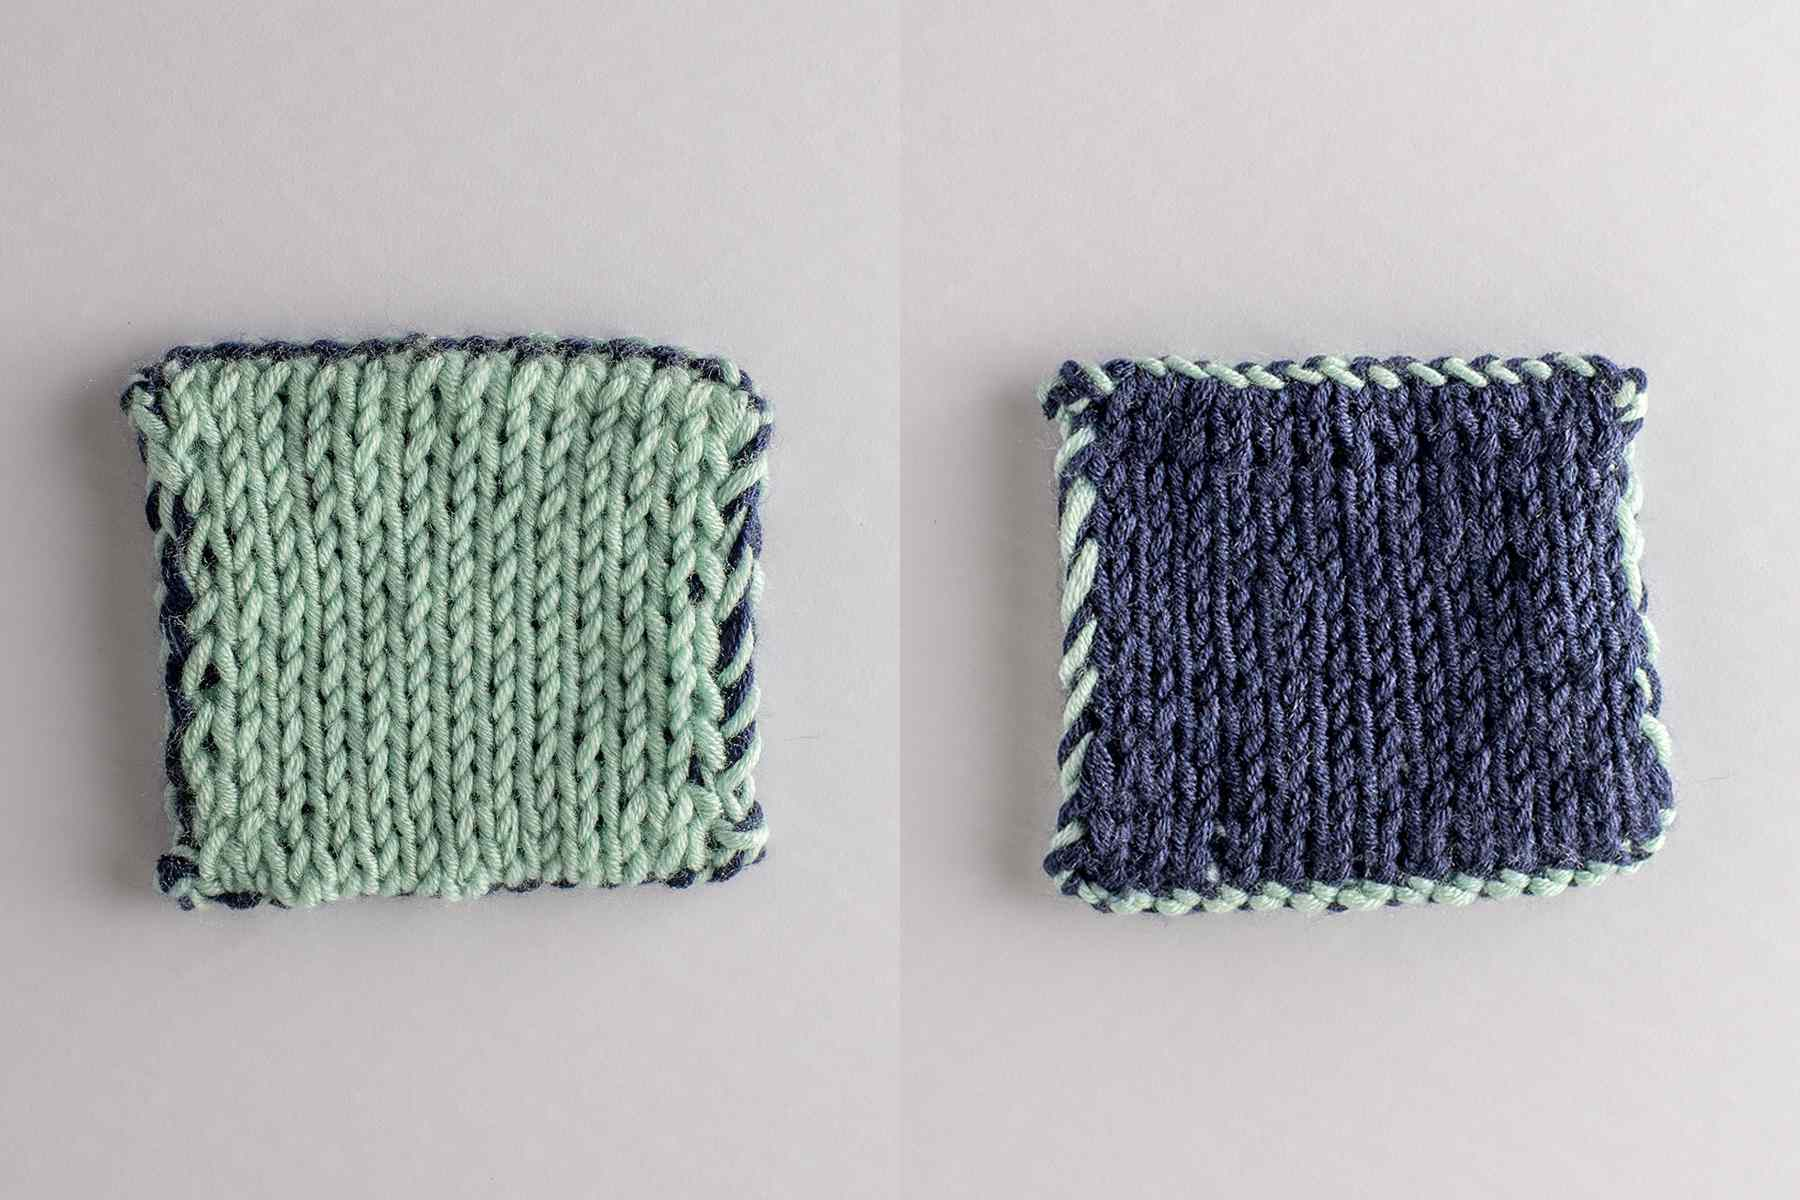 Side by side double knitted fabric swatch on a white background.